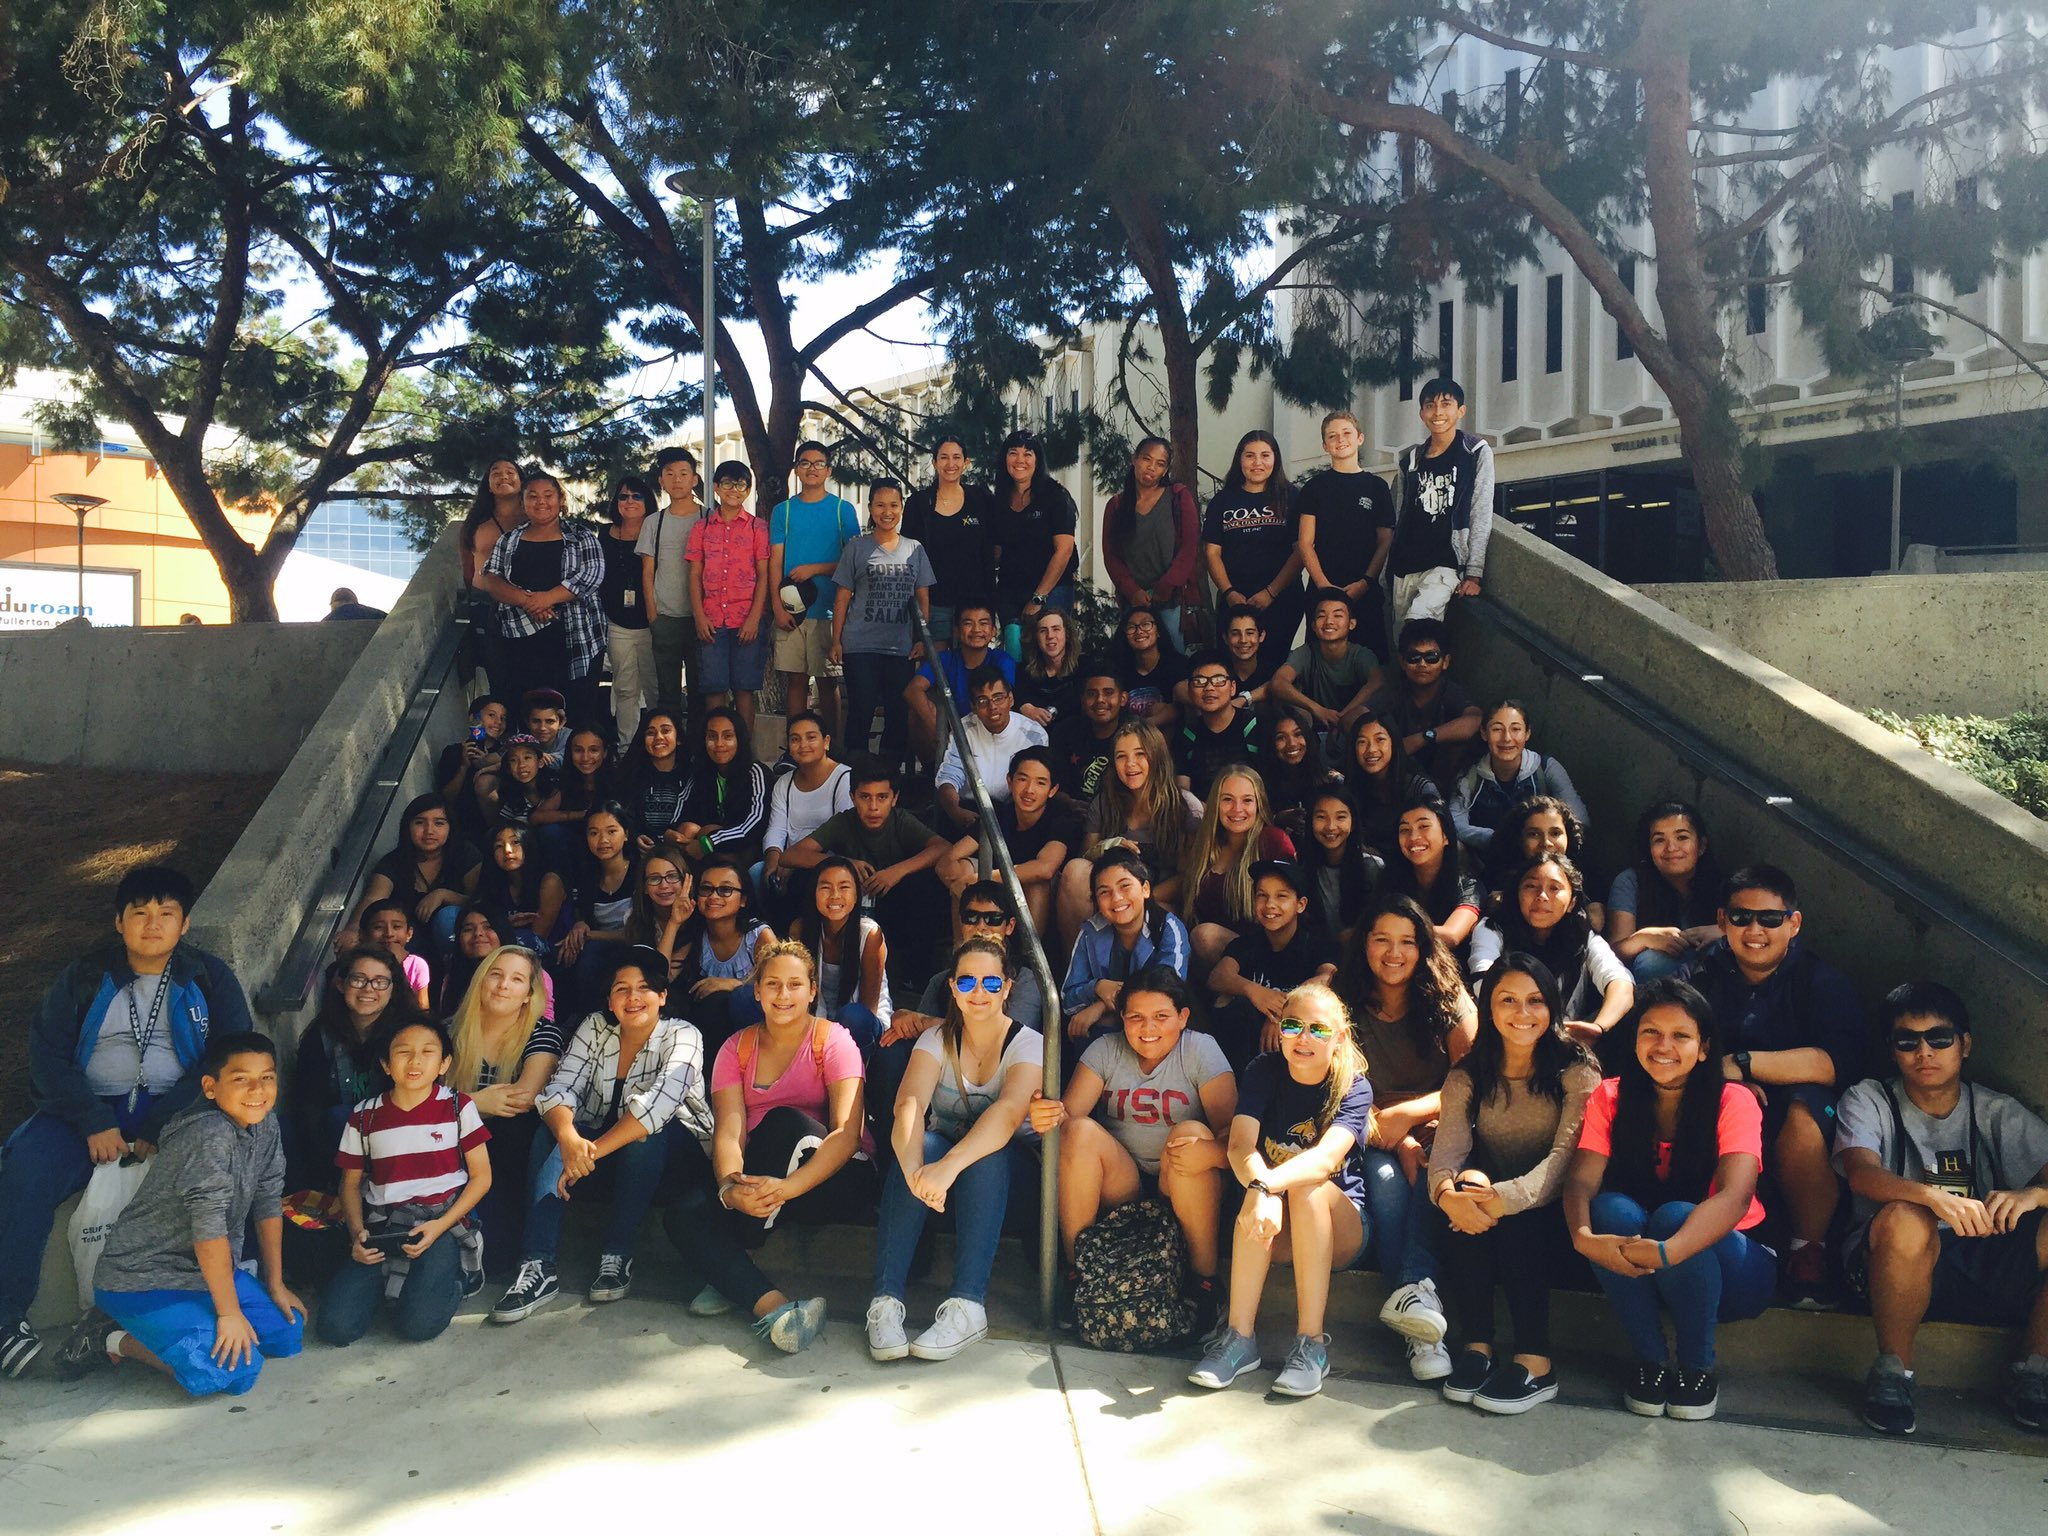 Field Trip To Cal State Fullerton Avid Cougar Chronicle